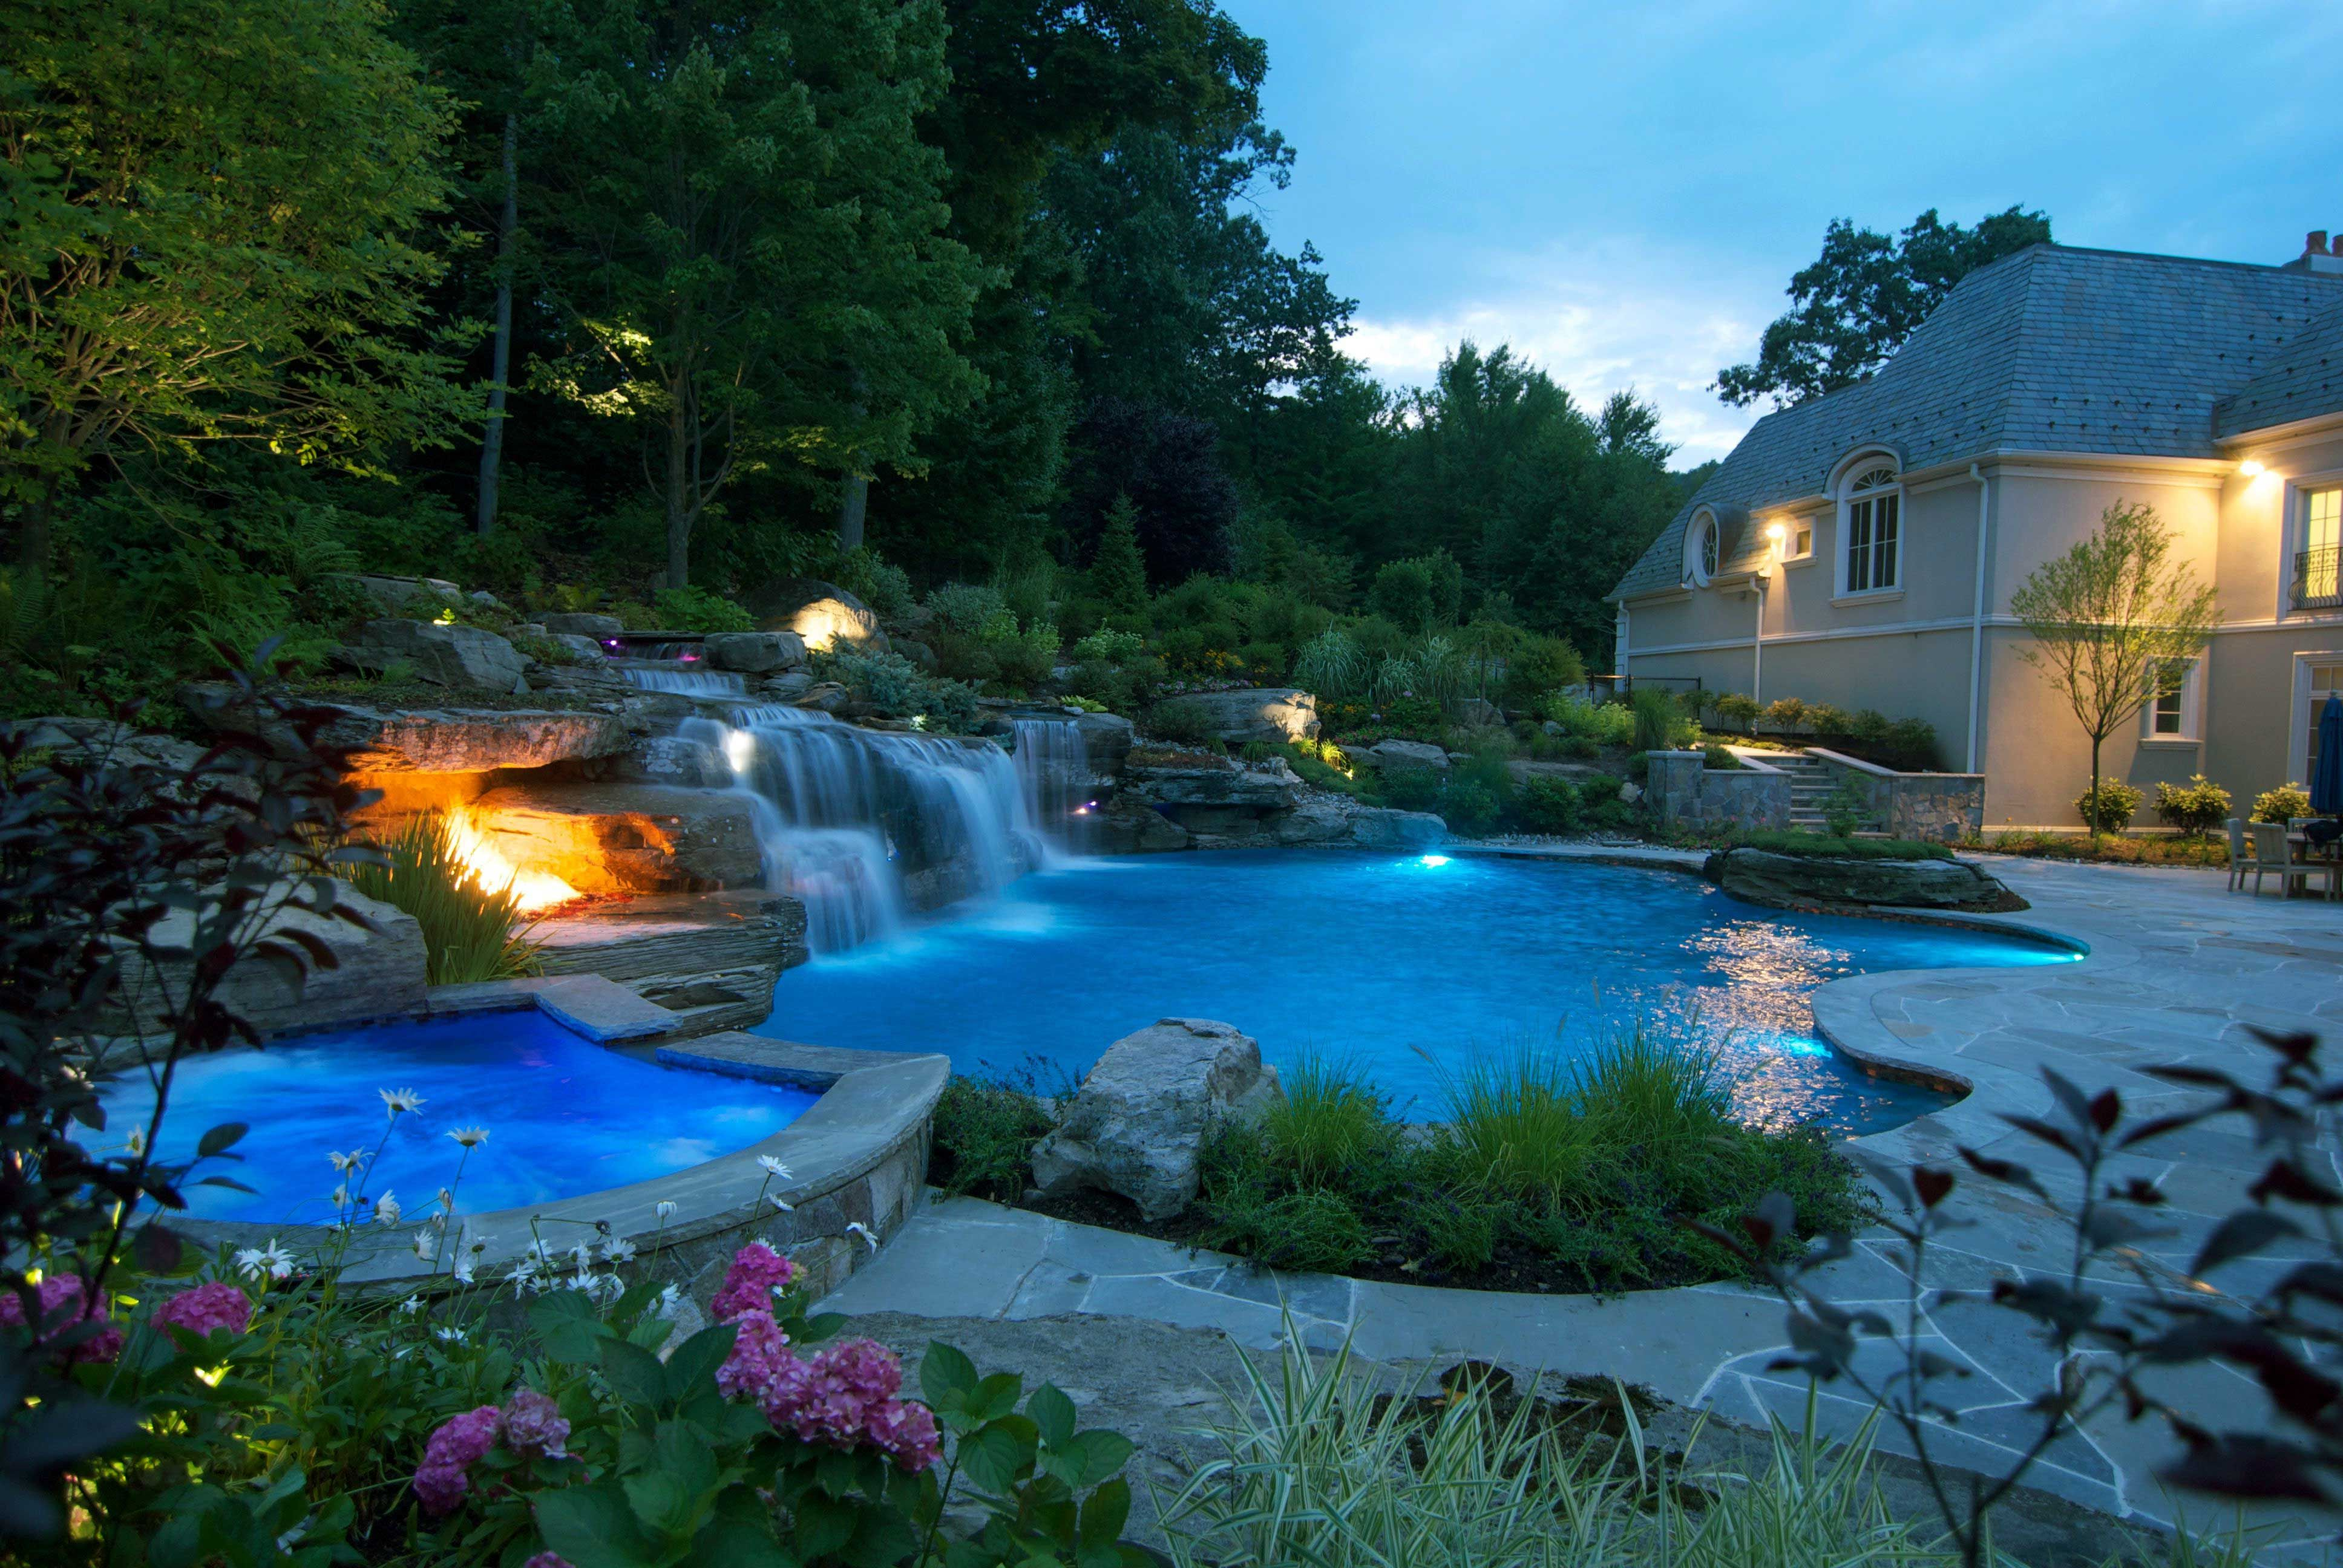 64 Gorgeous Large Backyard Landscaping Ideas To Amaze Your Guest Small Pool Design Backyard Pool Backyard Pool Landscaping